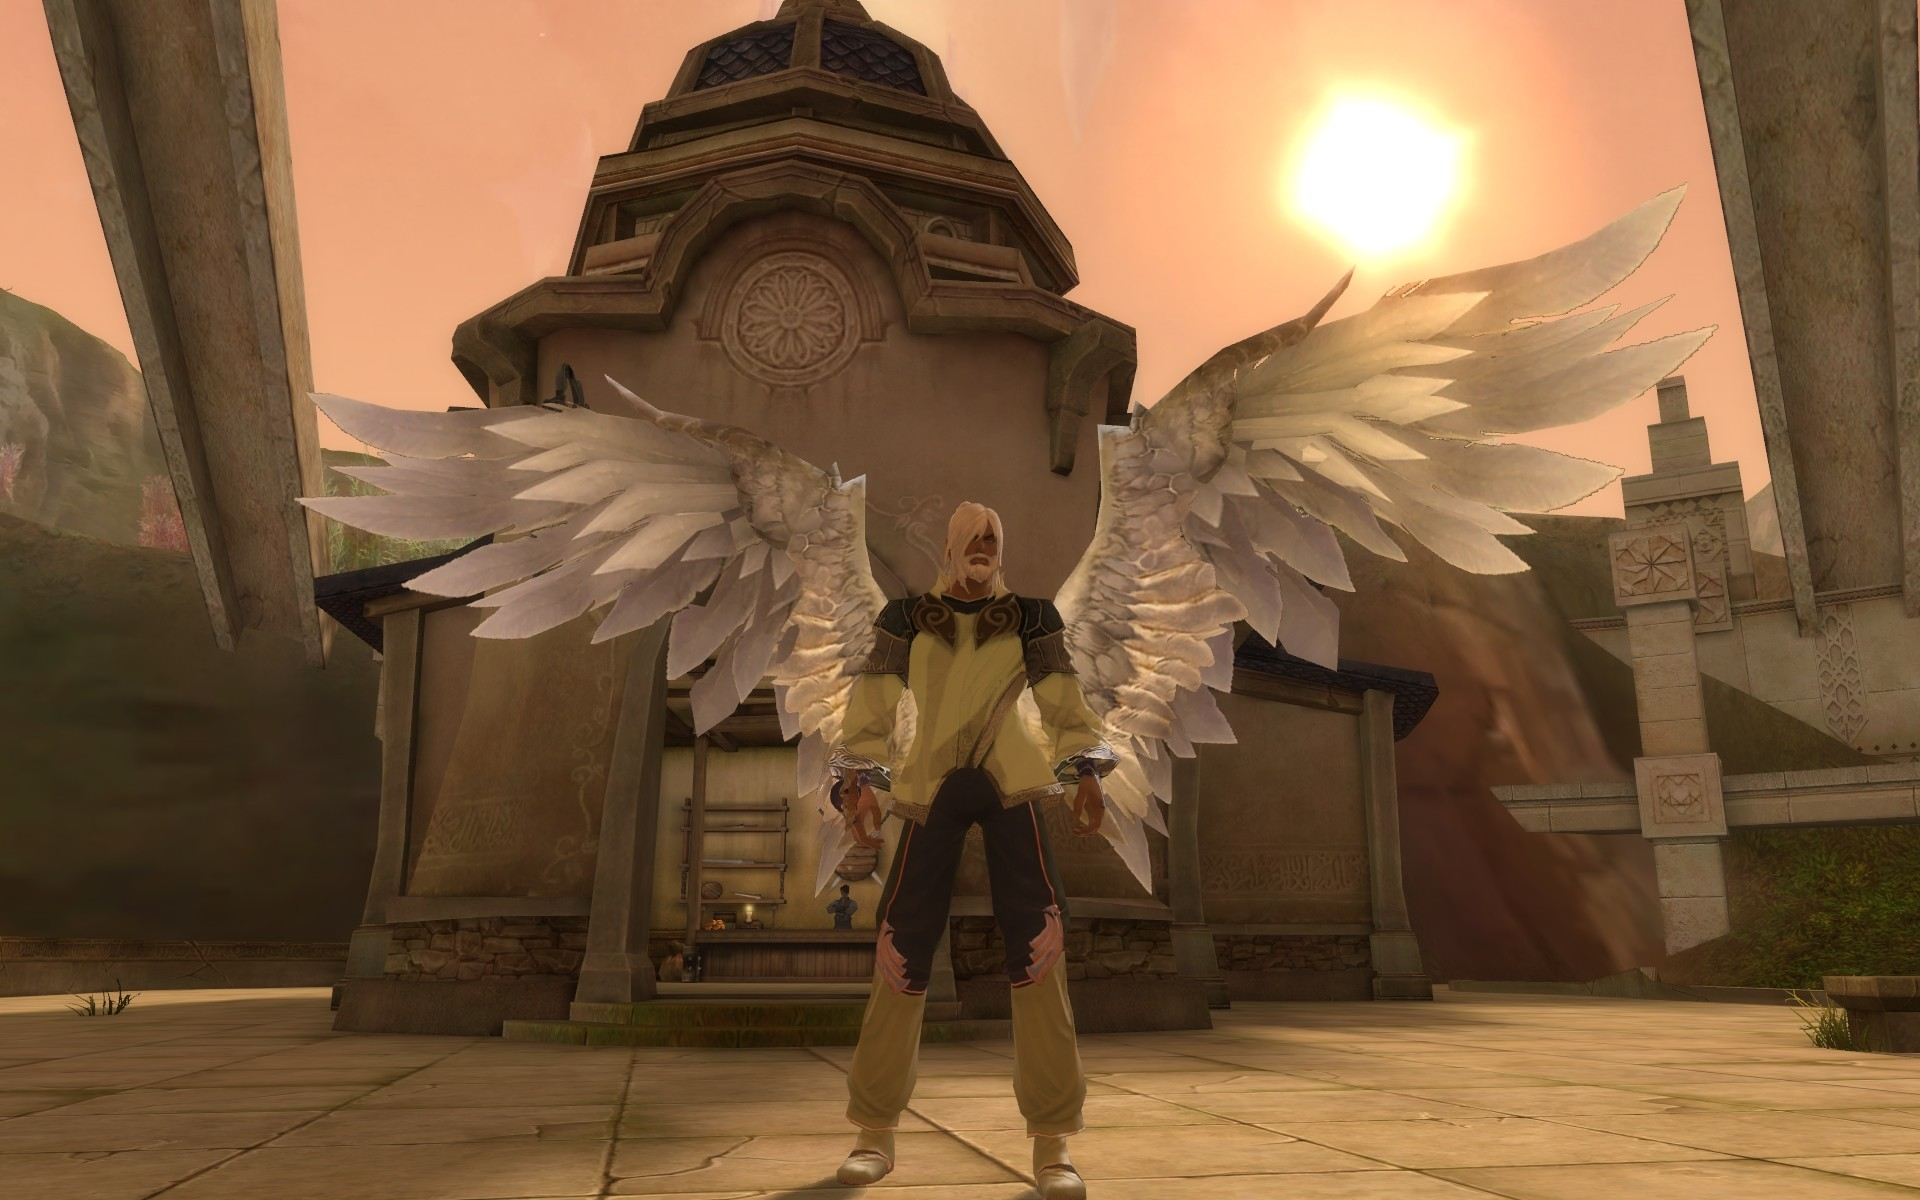 Aion - Just spreading my wings (via emote)